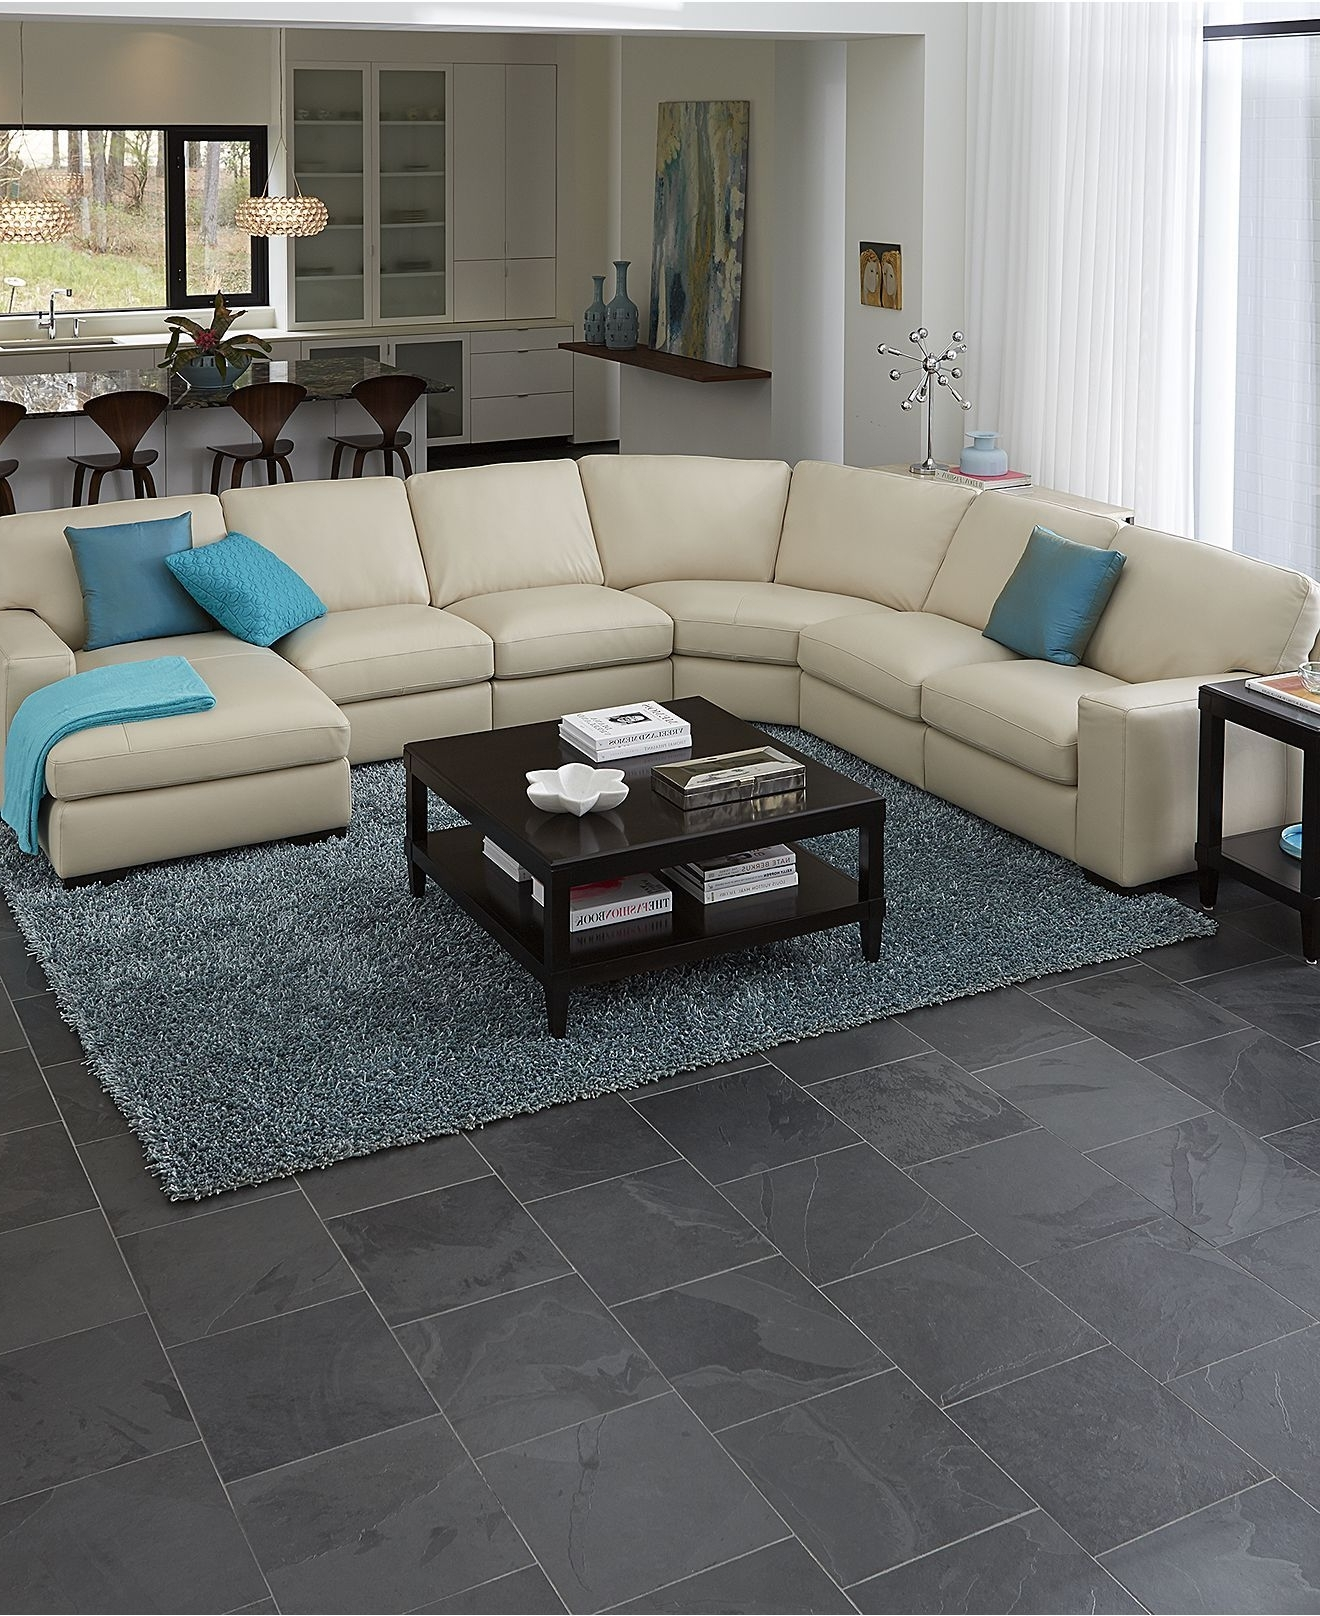 Oakville Sectional Sofas Pertaining To Most Up To Date Fabrizio Leather Sectional Sofa Living Room Furniture Collection (View 14 of 20)